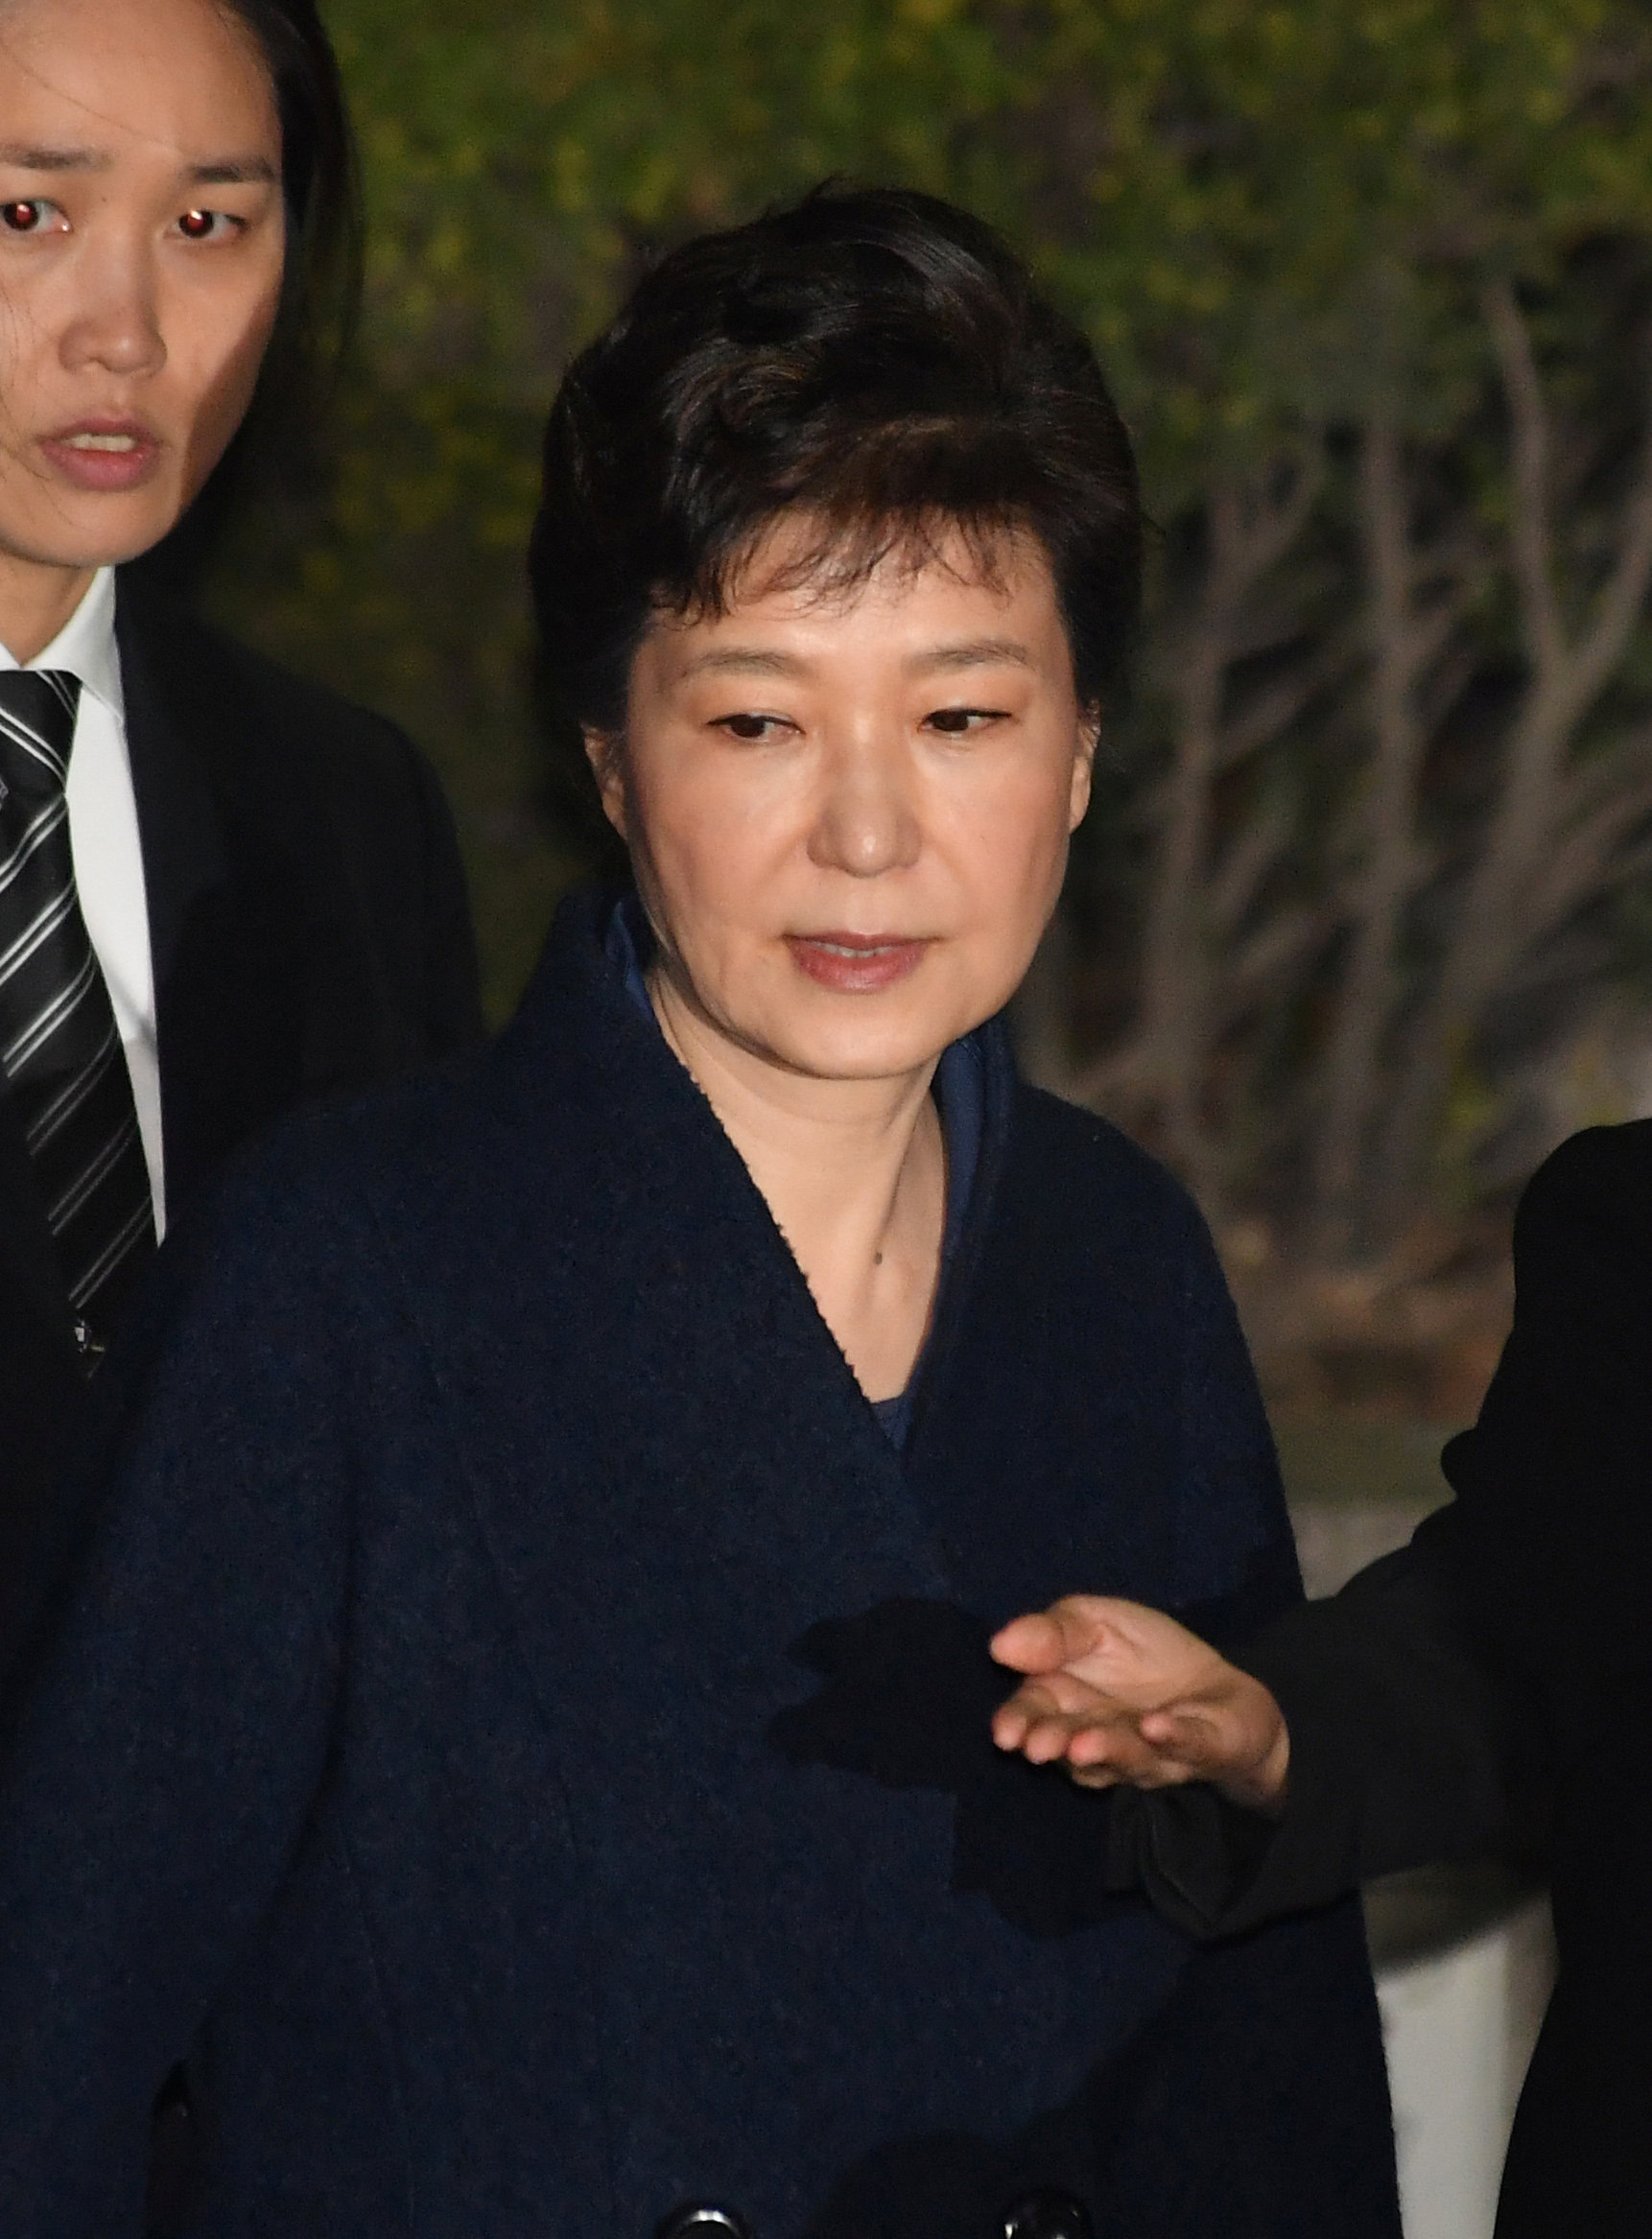 Ousted South Korean President Park Geun-hye, leaves after hearing on a prosecutors' request for her arrest for corruption at the Seoul Central District Court on March 30, 2017. (REUTERS/Song Kyung-Seok/Pool)